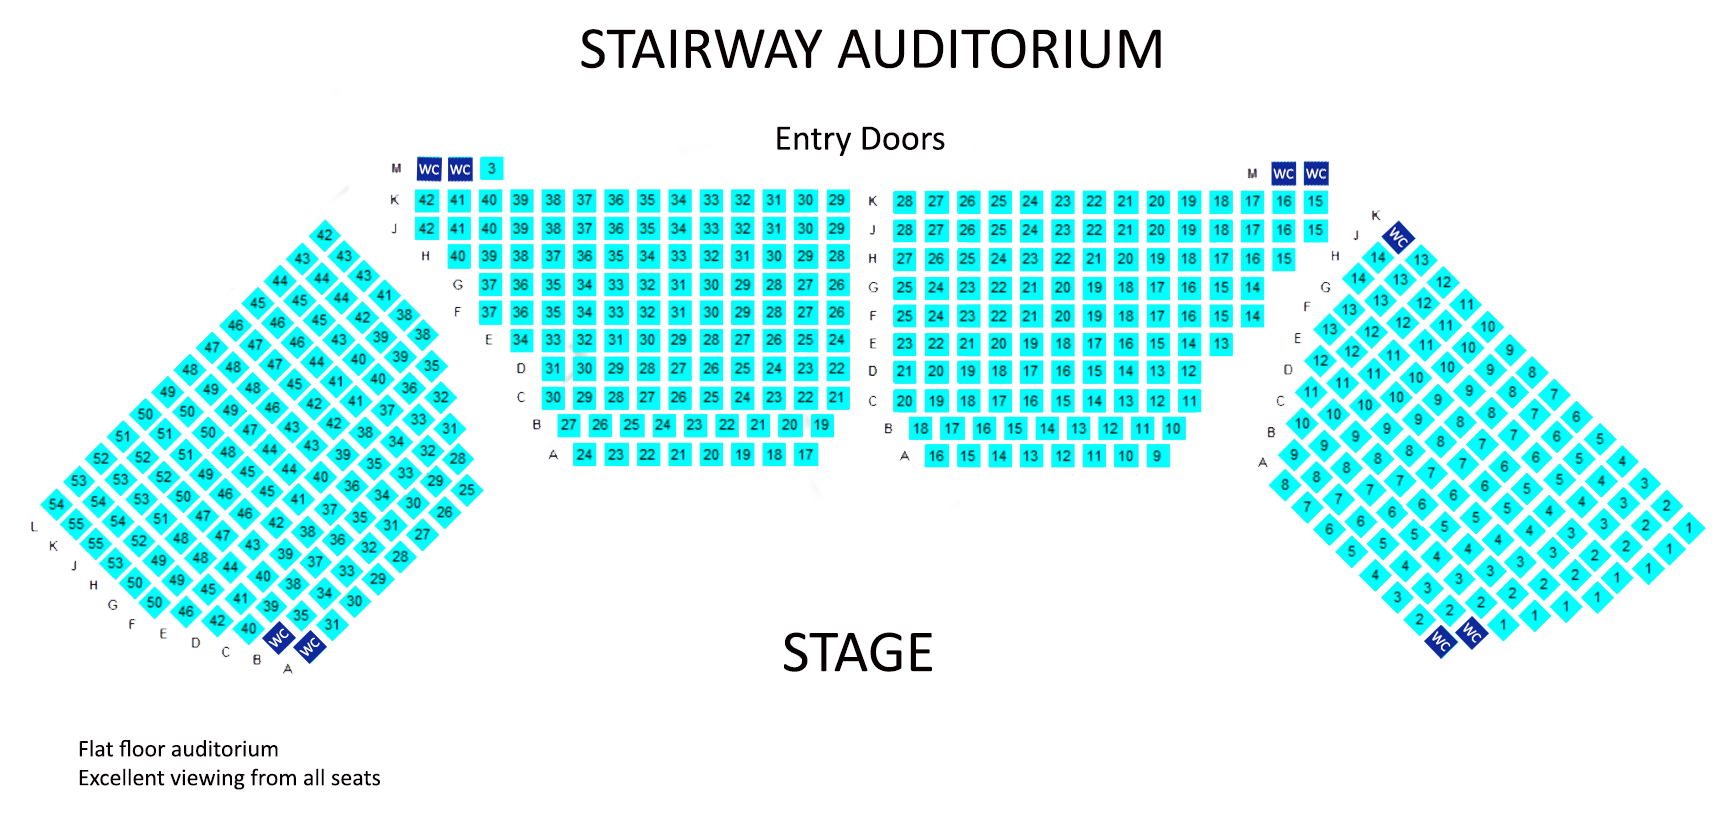 Colour coded seating map for auditorium